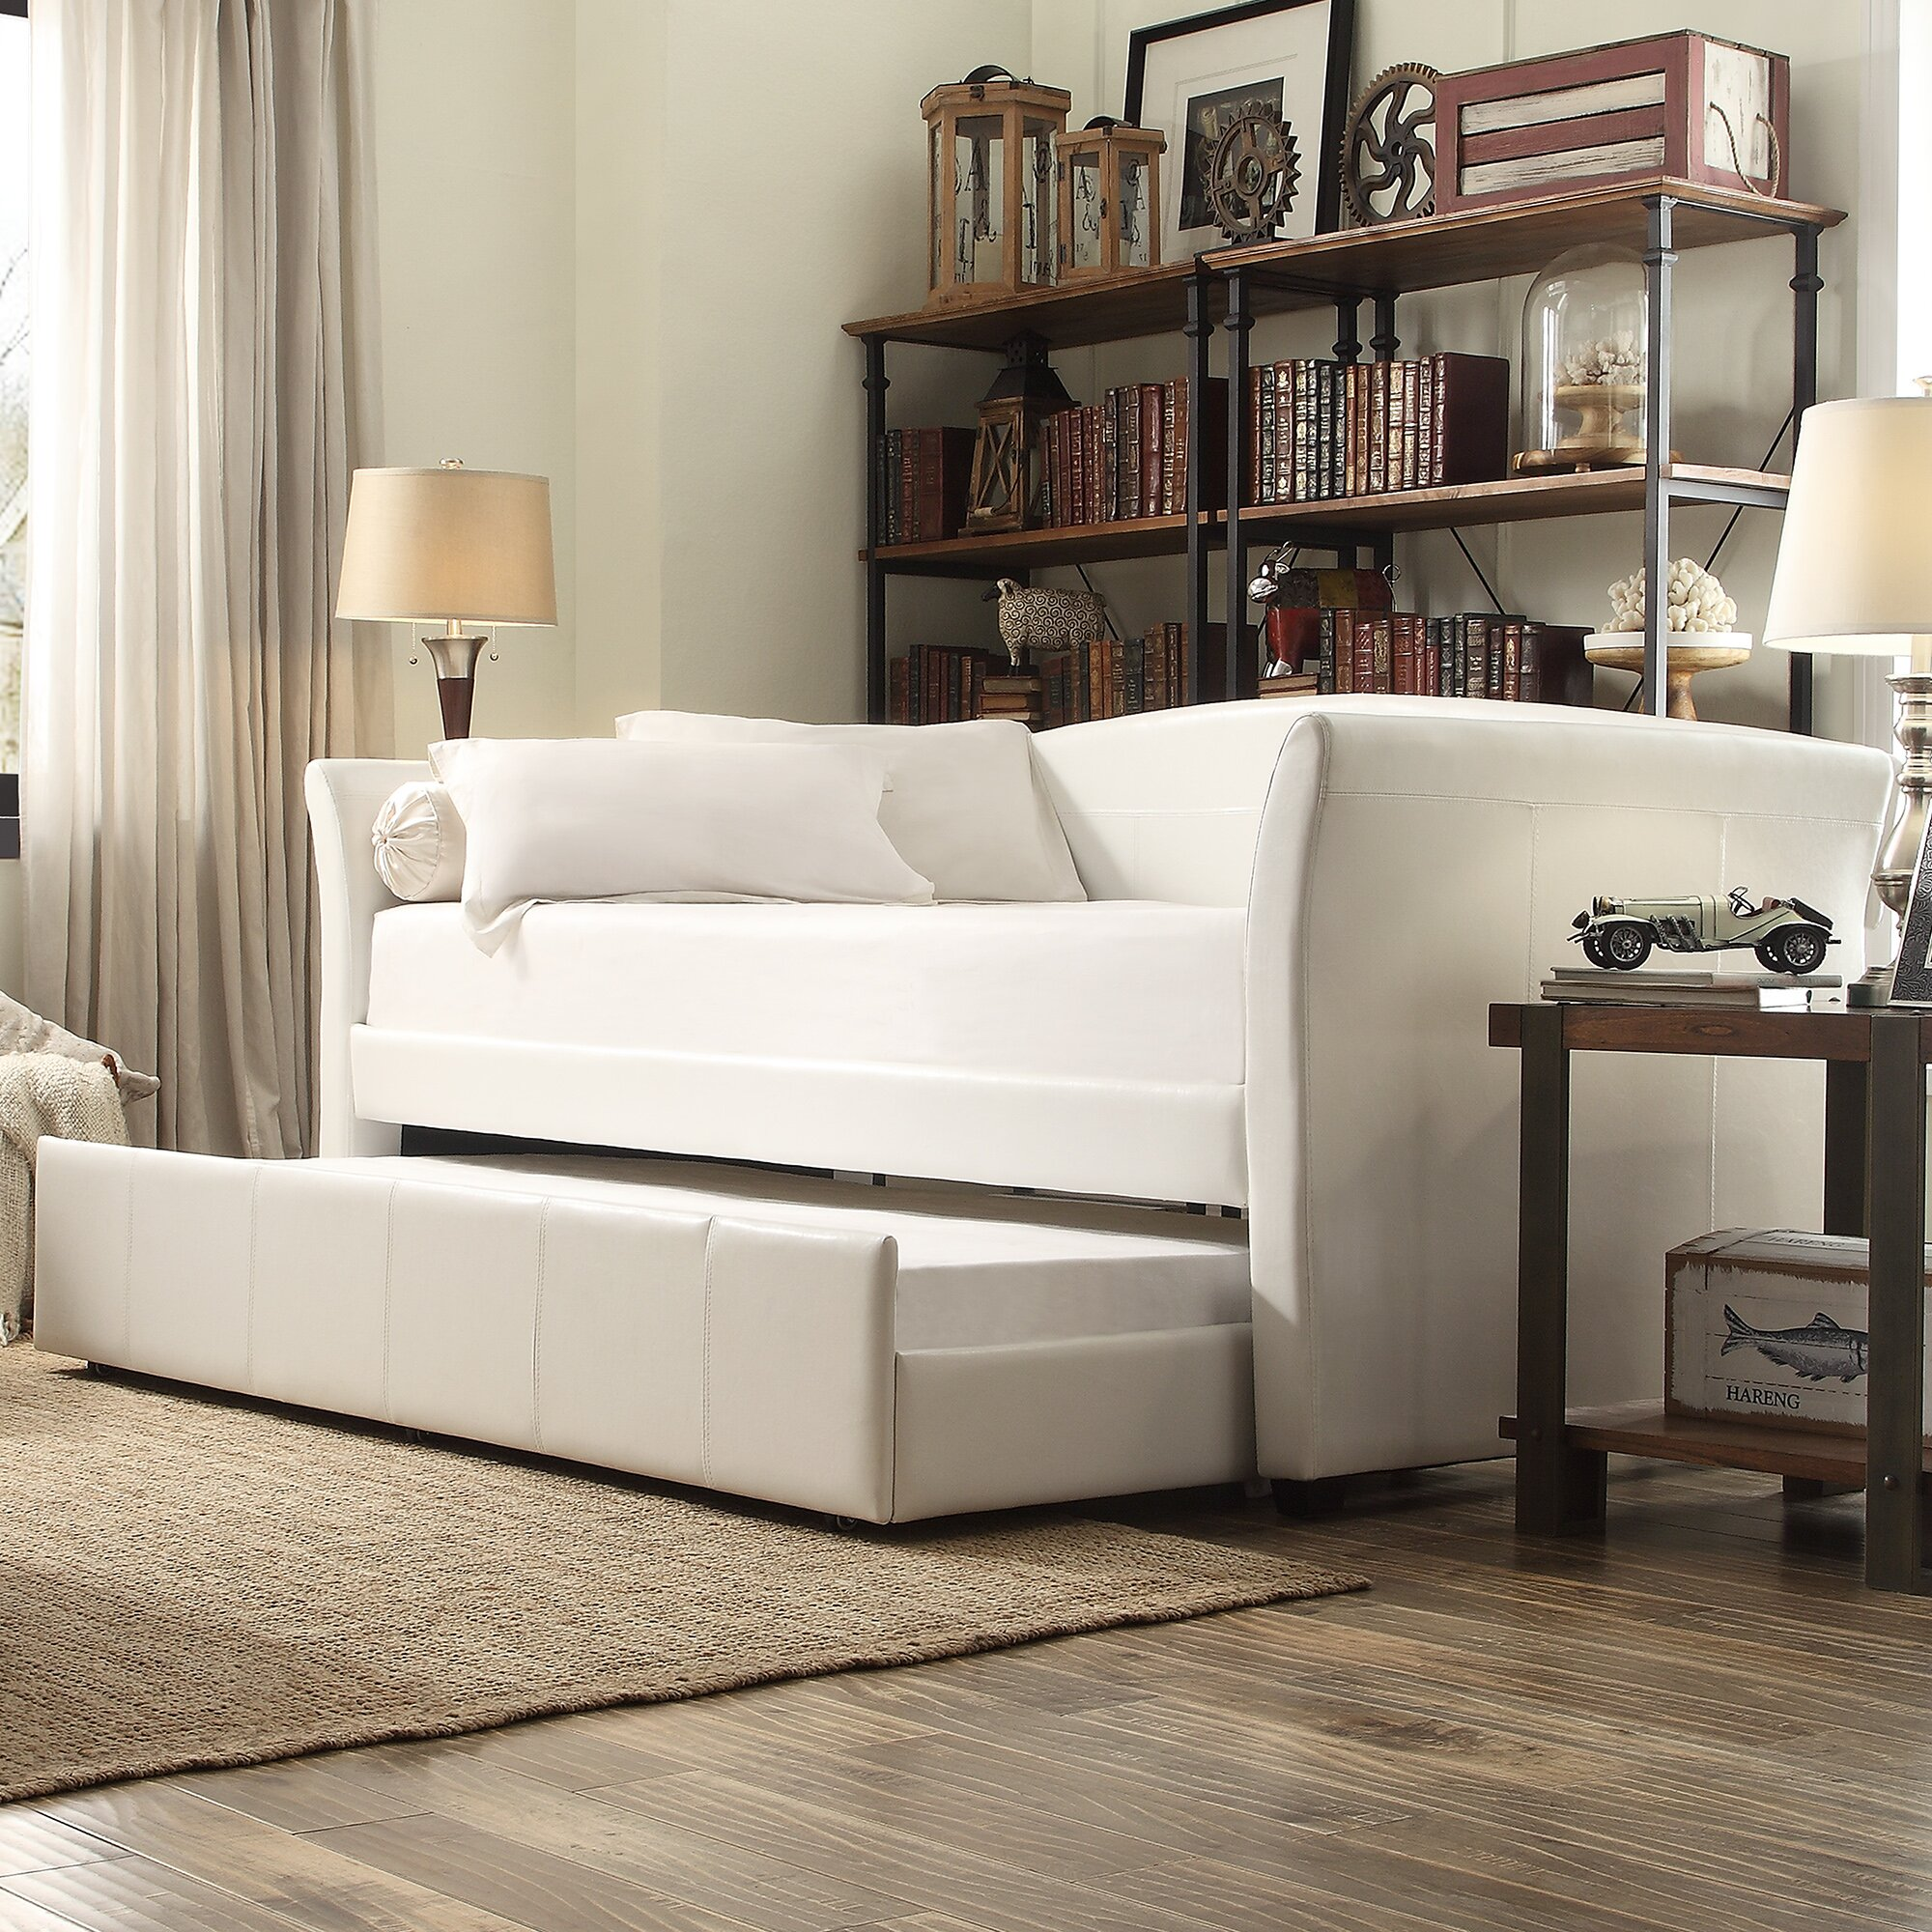 Kingstown Home Cataleya Daybed With Trundle Amp Reviews